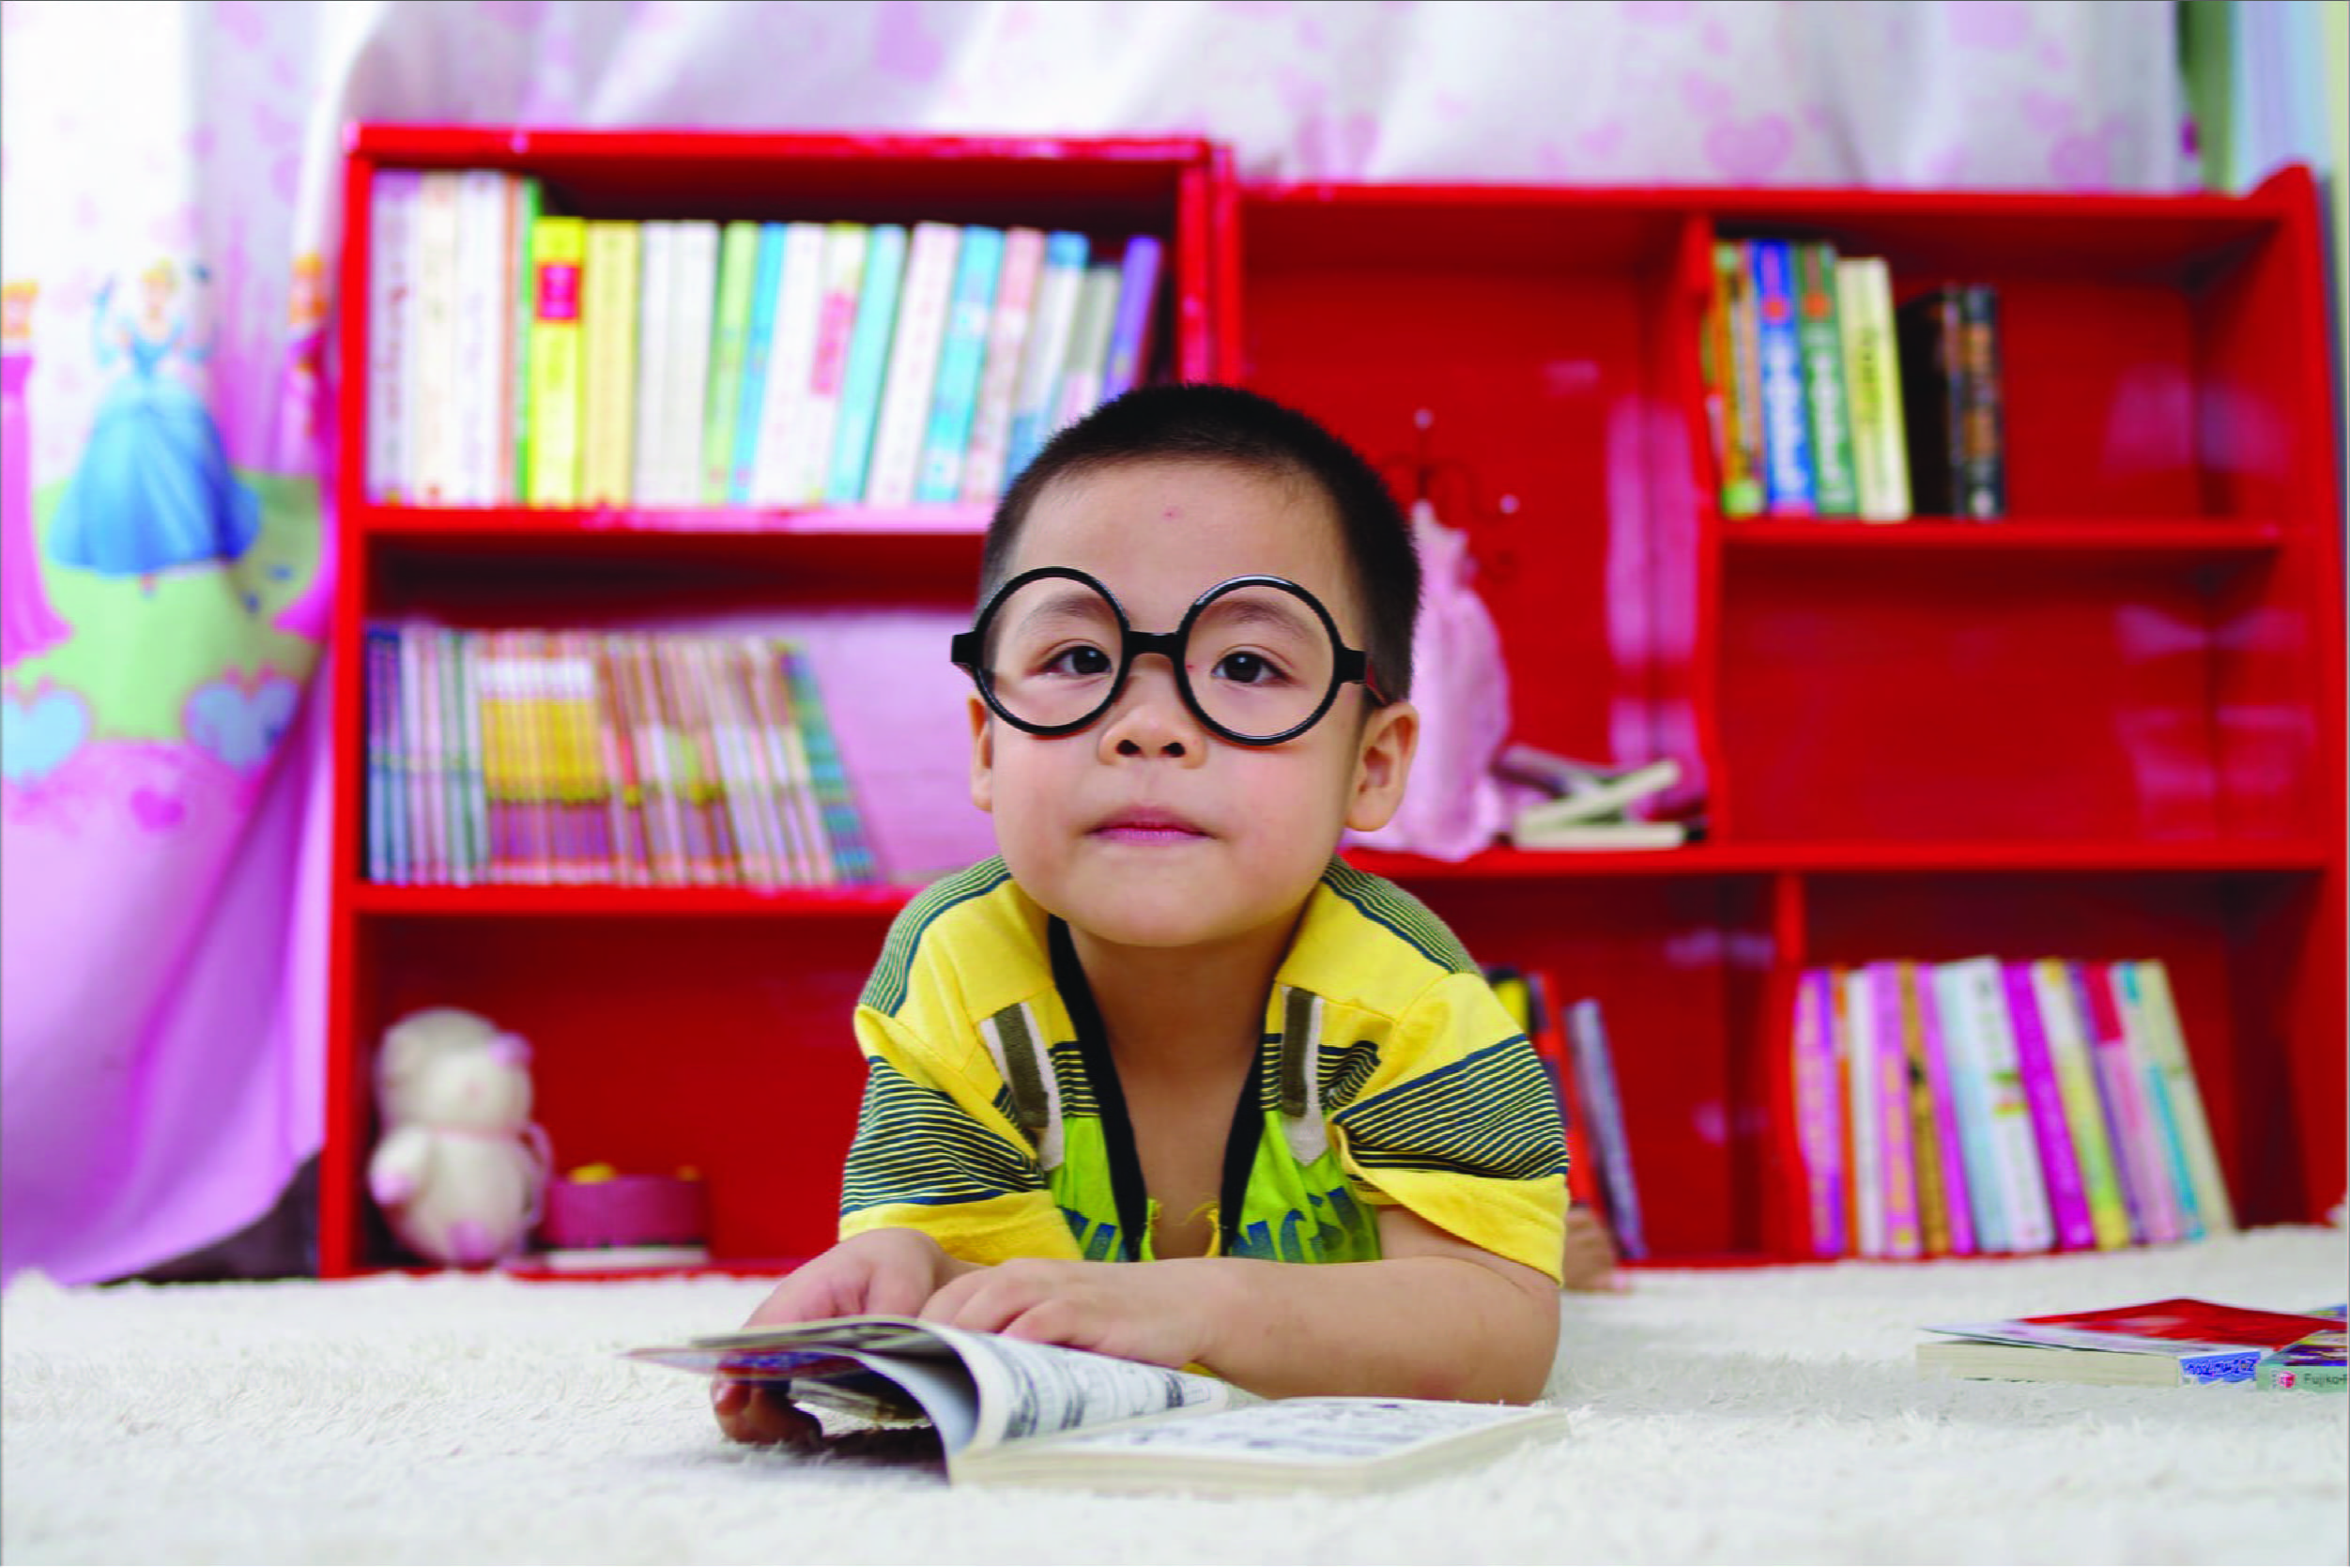 The Effects Of Exposing Electronic Devices To Preschooler's Development | ALFA and Friends